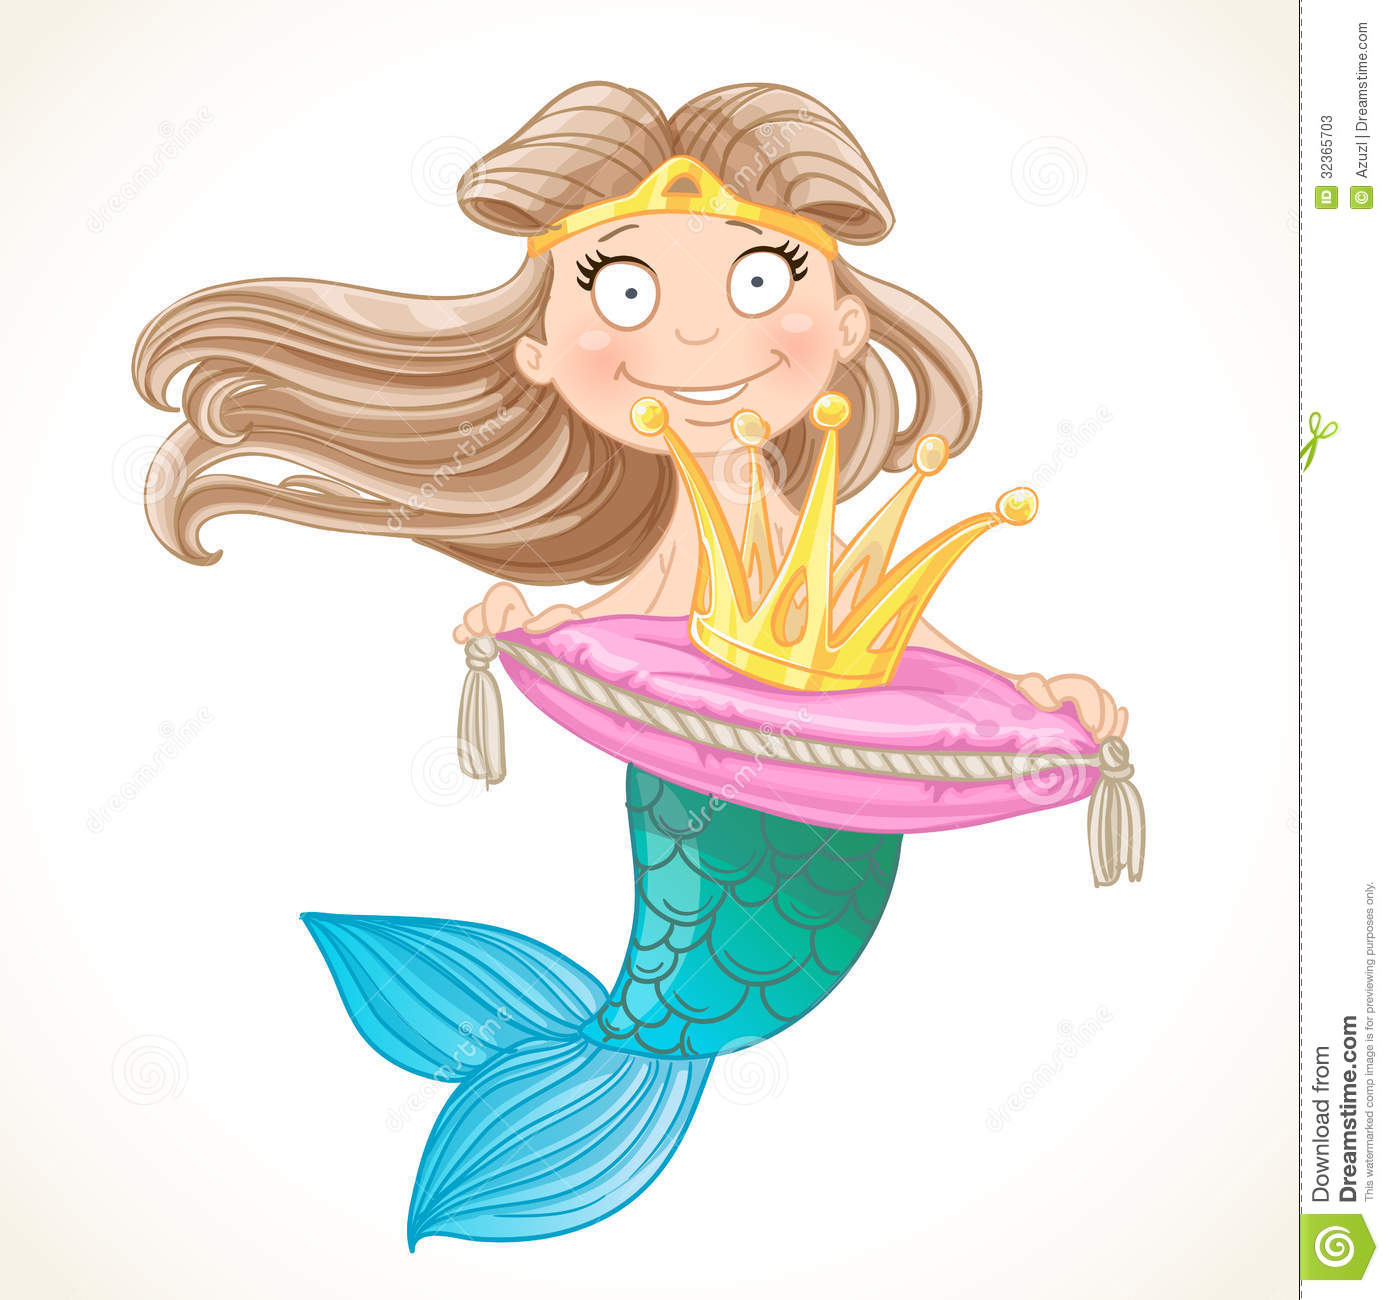 Cute Mermaid Holding A Crown On The Pillow Stock Vector